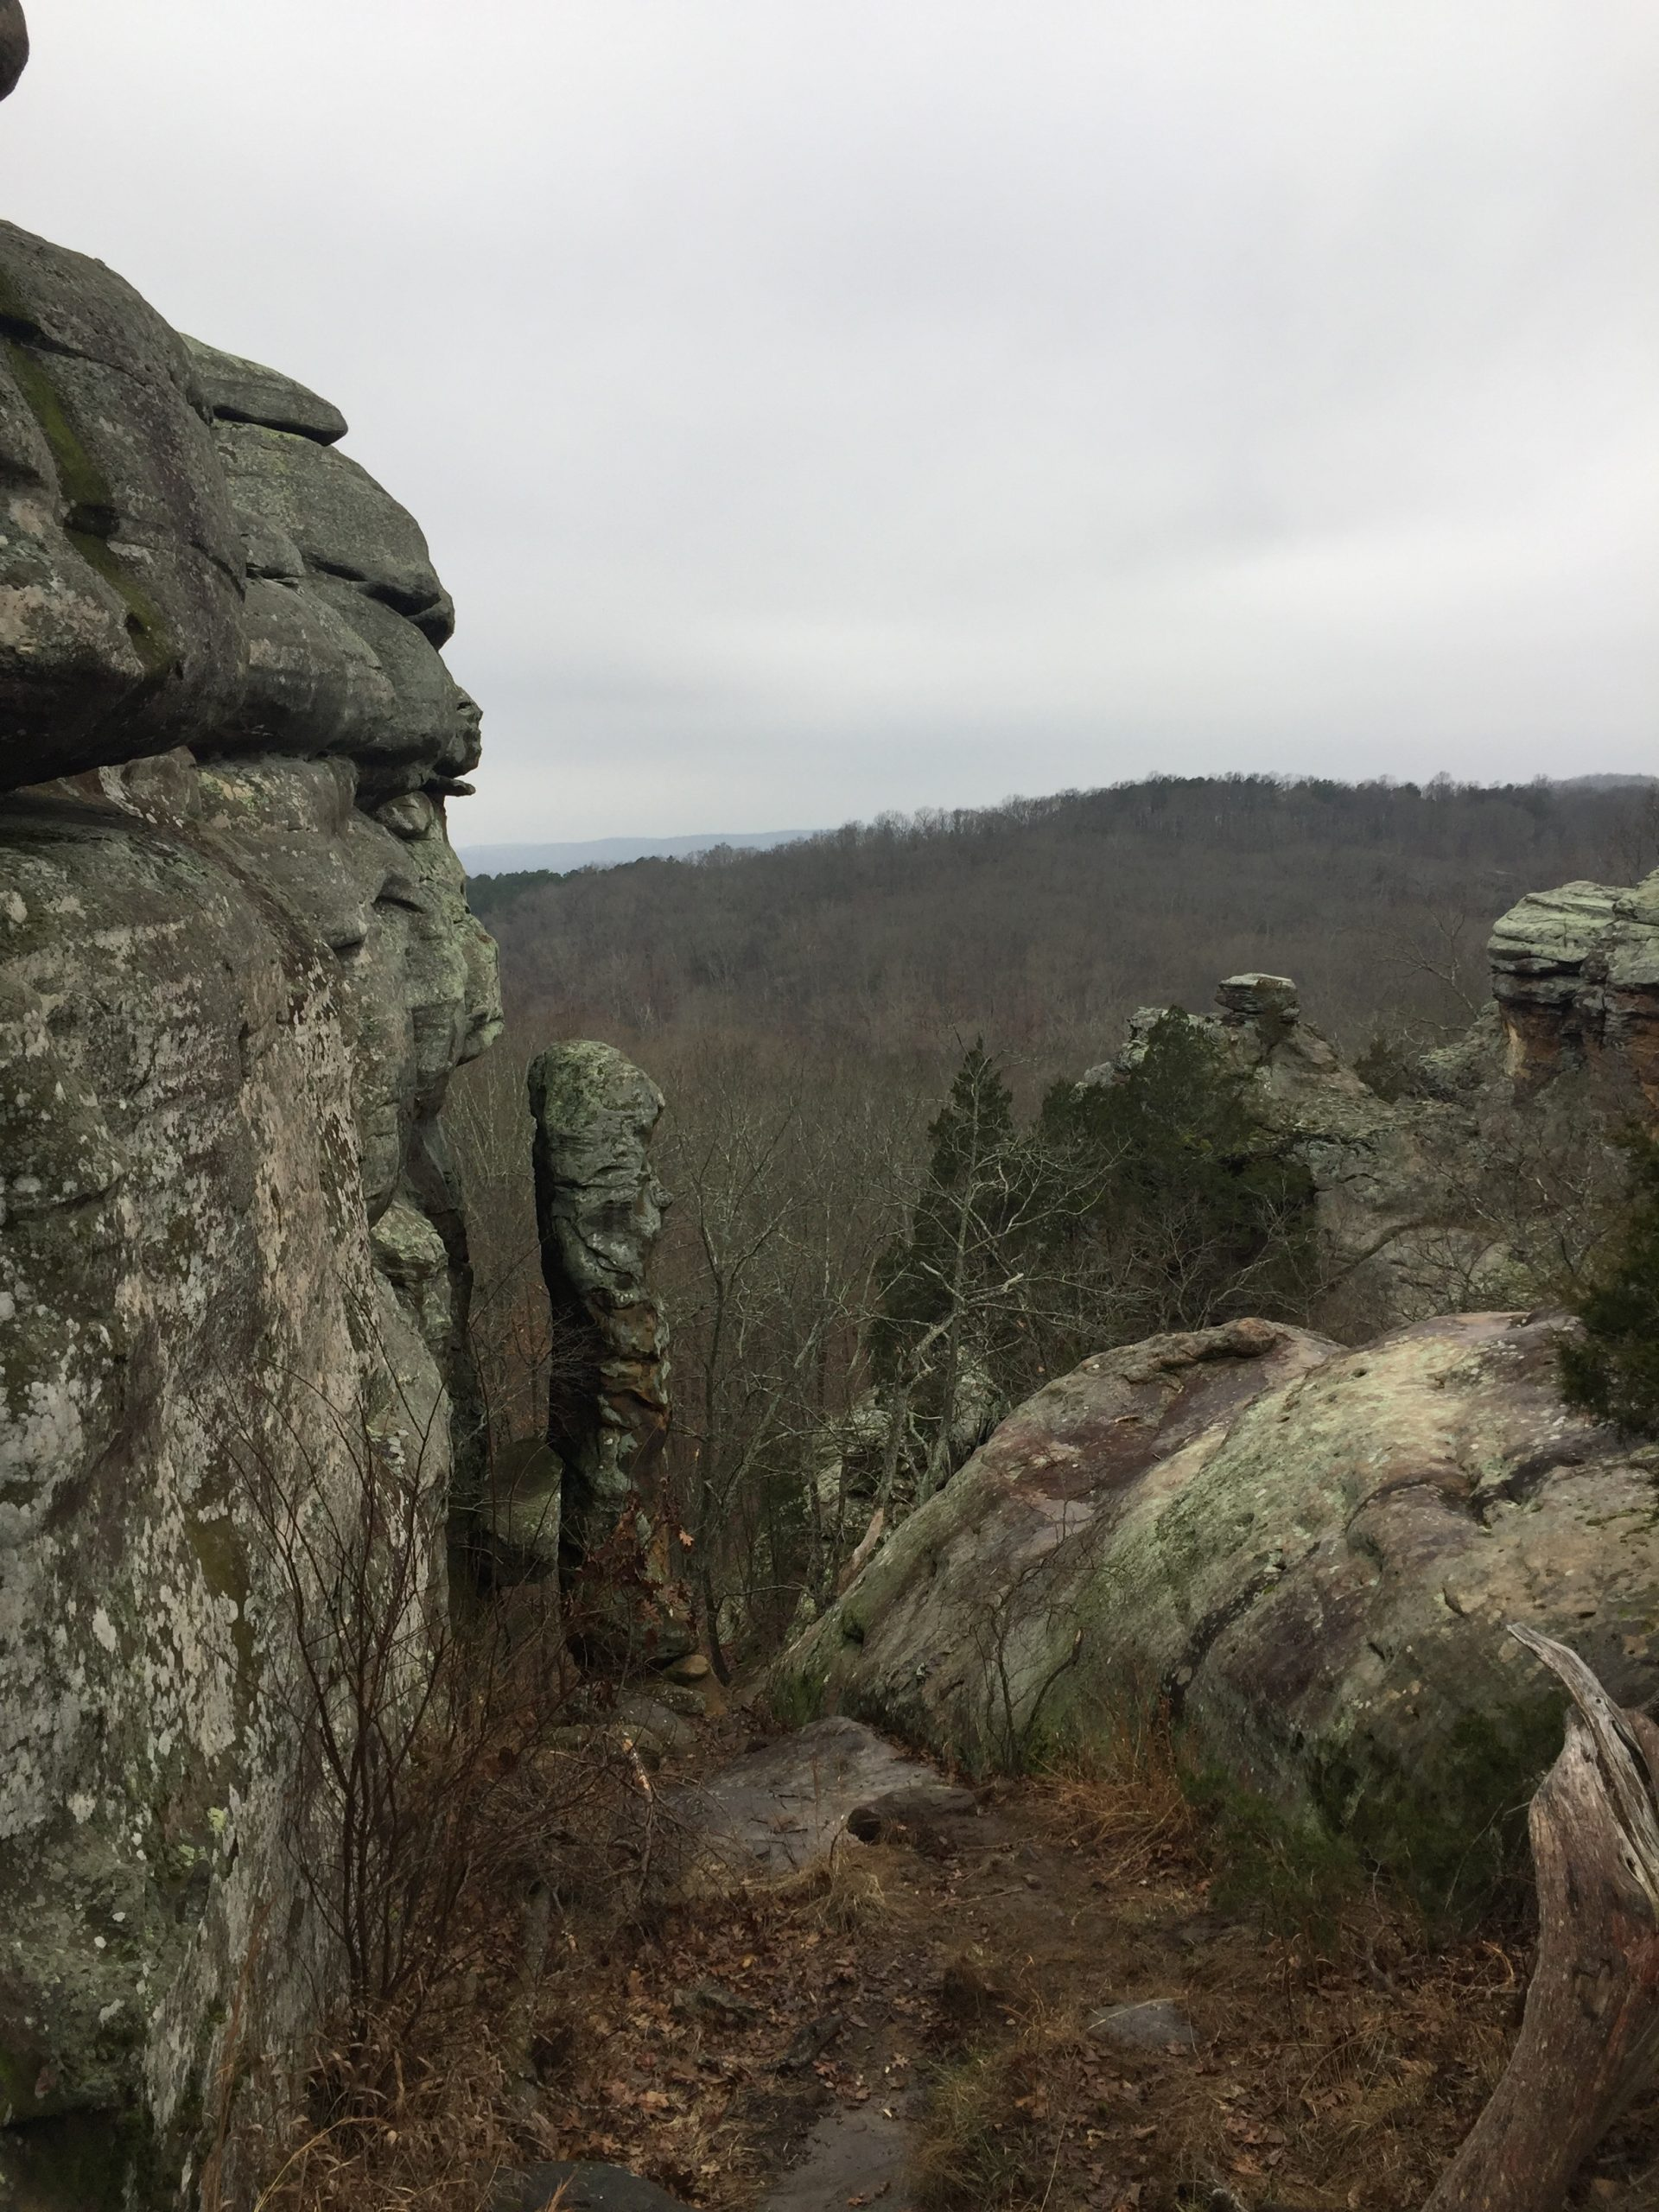 The Devil's Smokestack, in Shawnee National Forest's Garden of the Gods